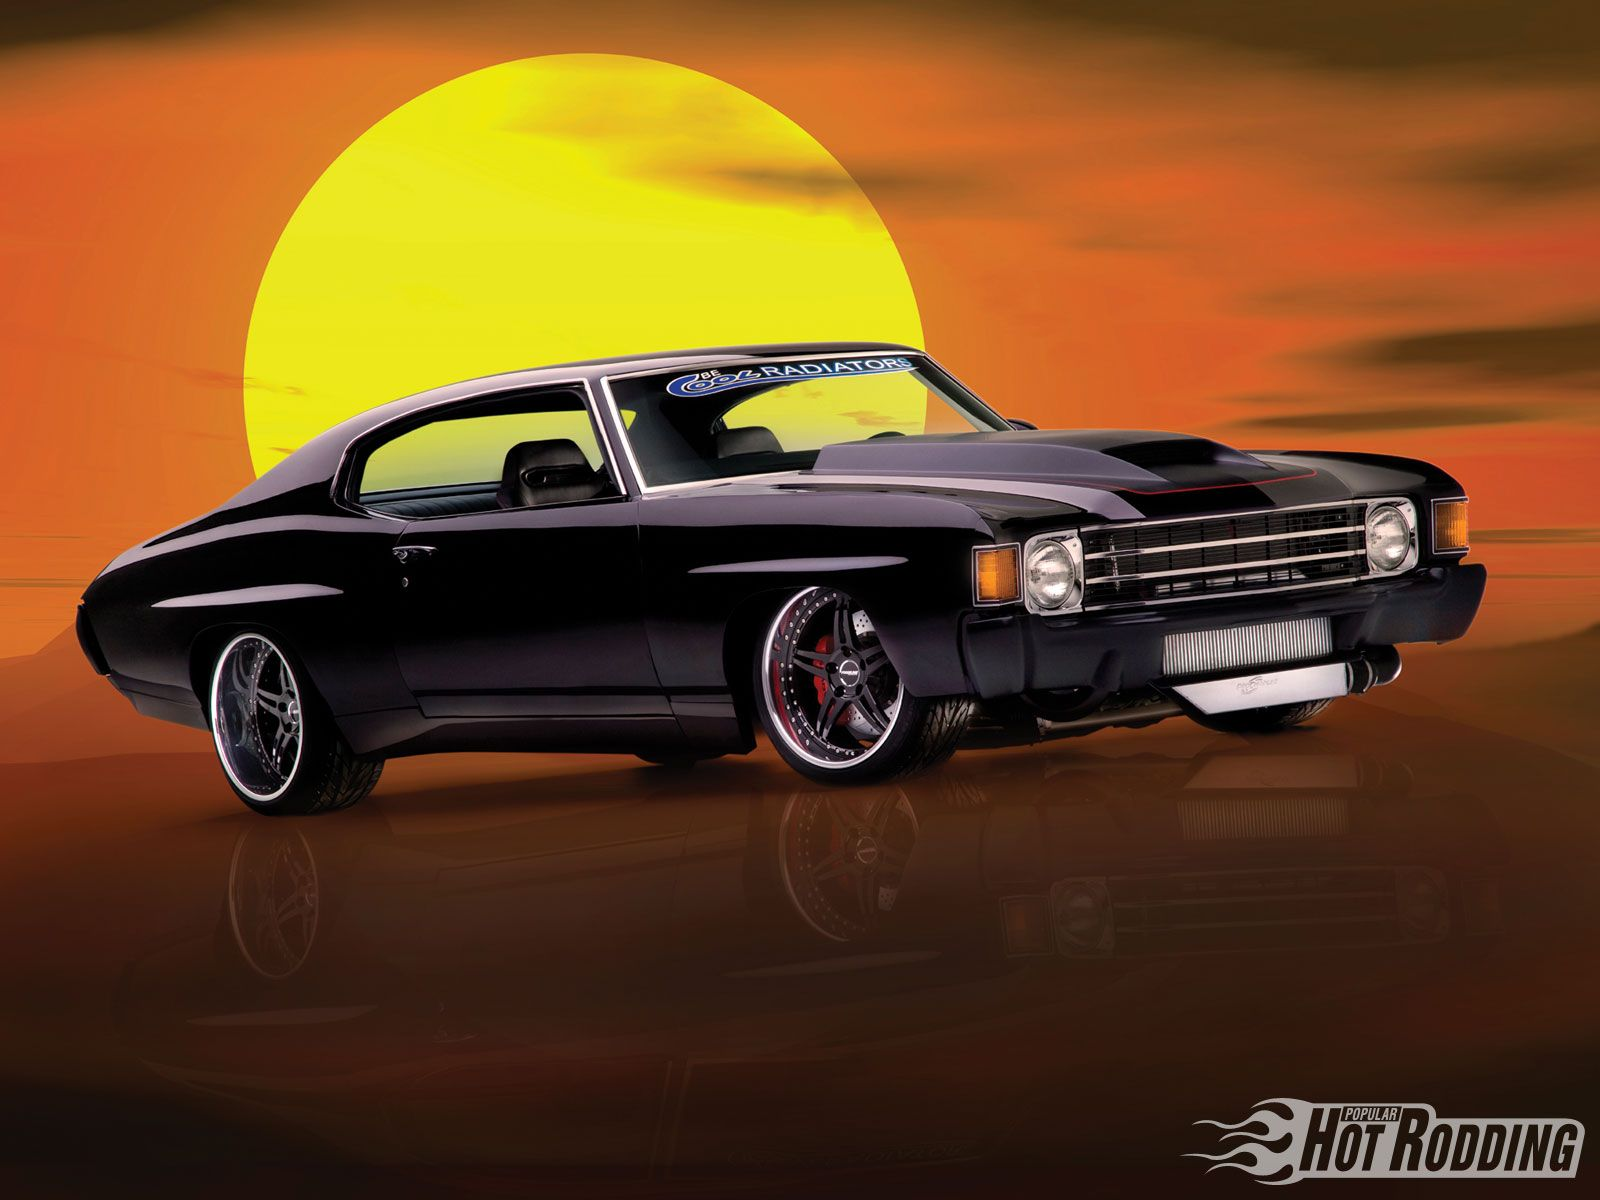 Hot Rod Muscle Car 1972 Chevy Chevelle Muscle Cars Hot Rod